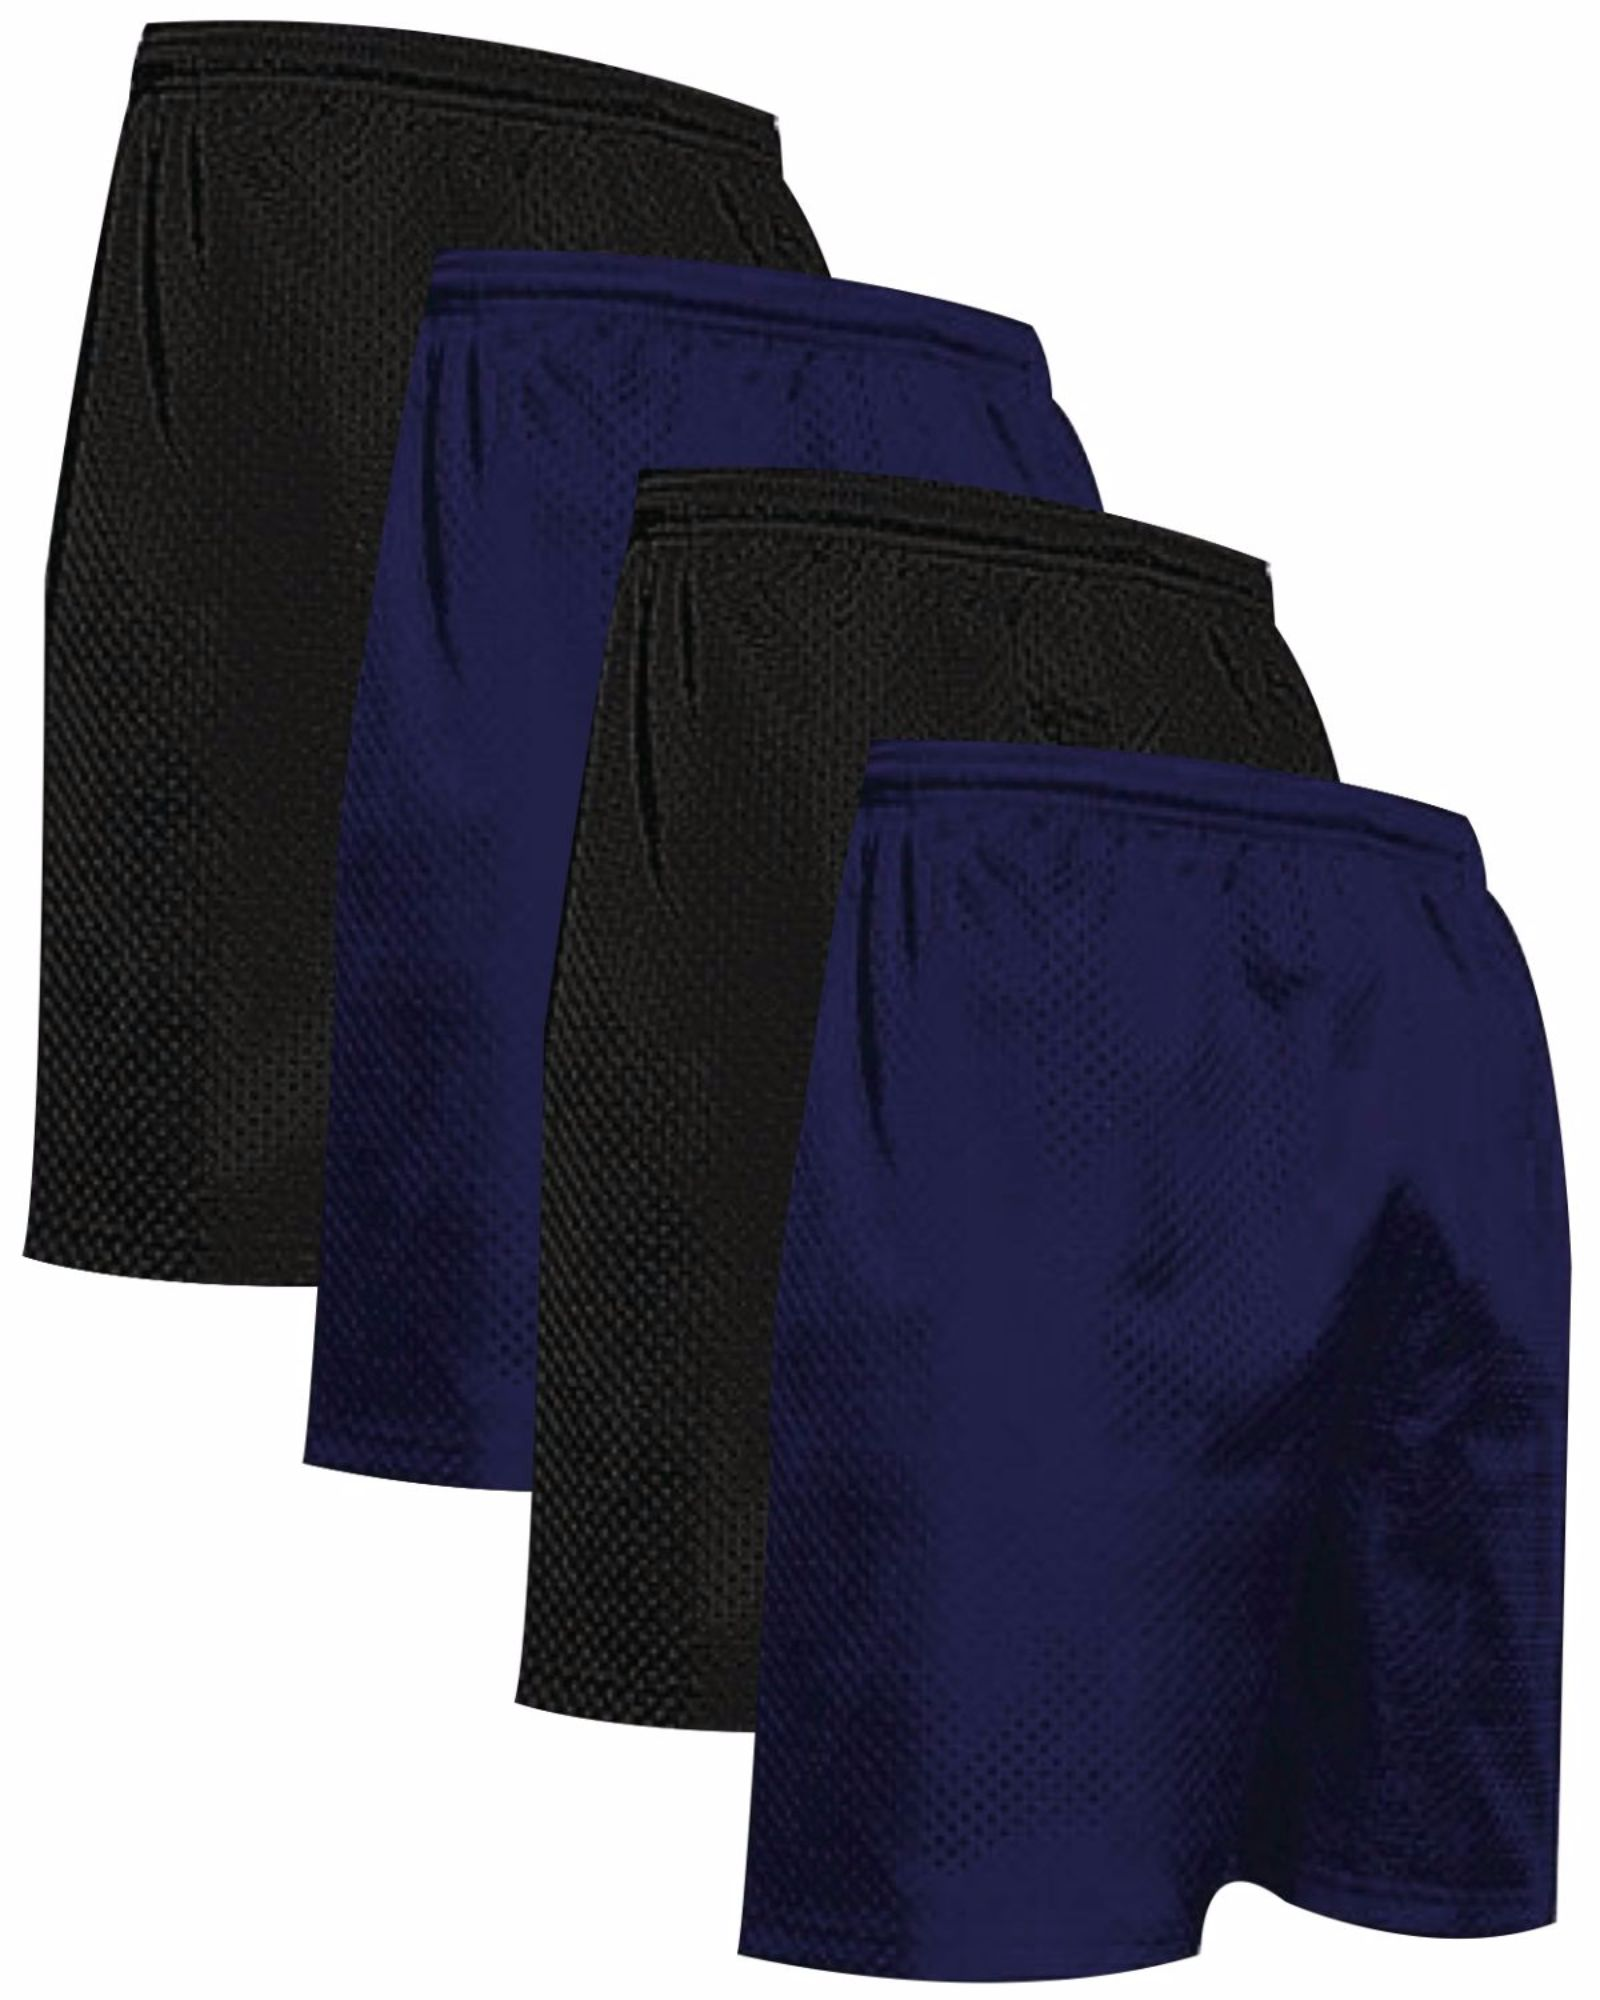 """VALUE PACK  > BUY 2 GET 2 FREE >  4 PACK > THE RAM BRAND > Men's  9"""" Performance Pro Mesh Gym Champ Shorts (XS-4XL) $10 S/H is on the 1st Pack only. In this Pack: (XS)(2Black/2Navy)"""